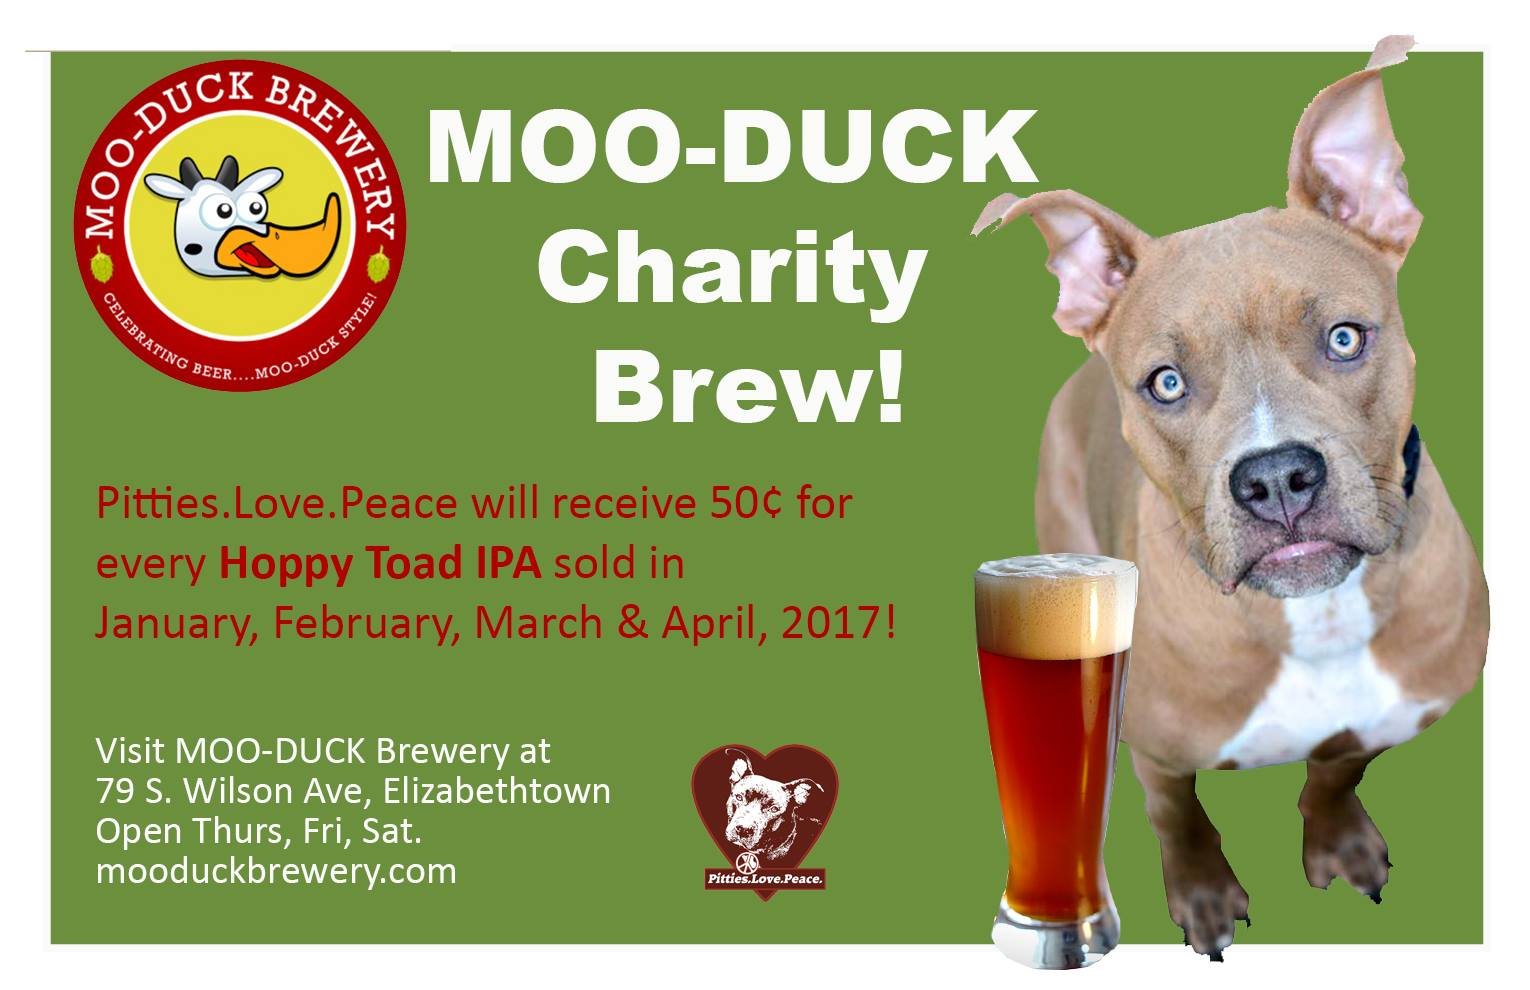 Moo-Duck Pittie Party - 4/29 - 12-9pm